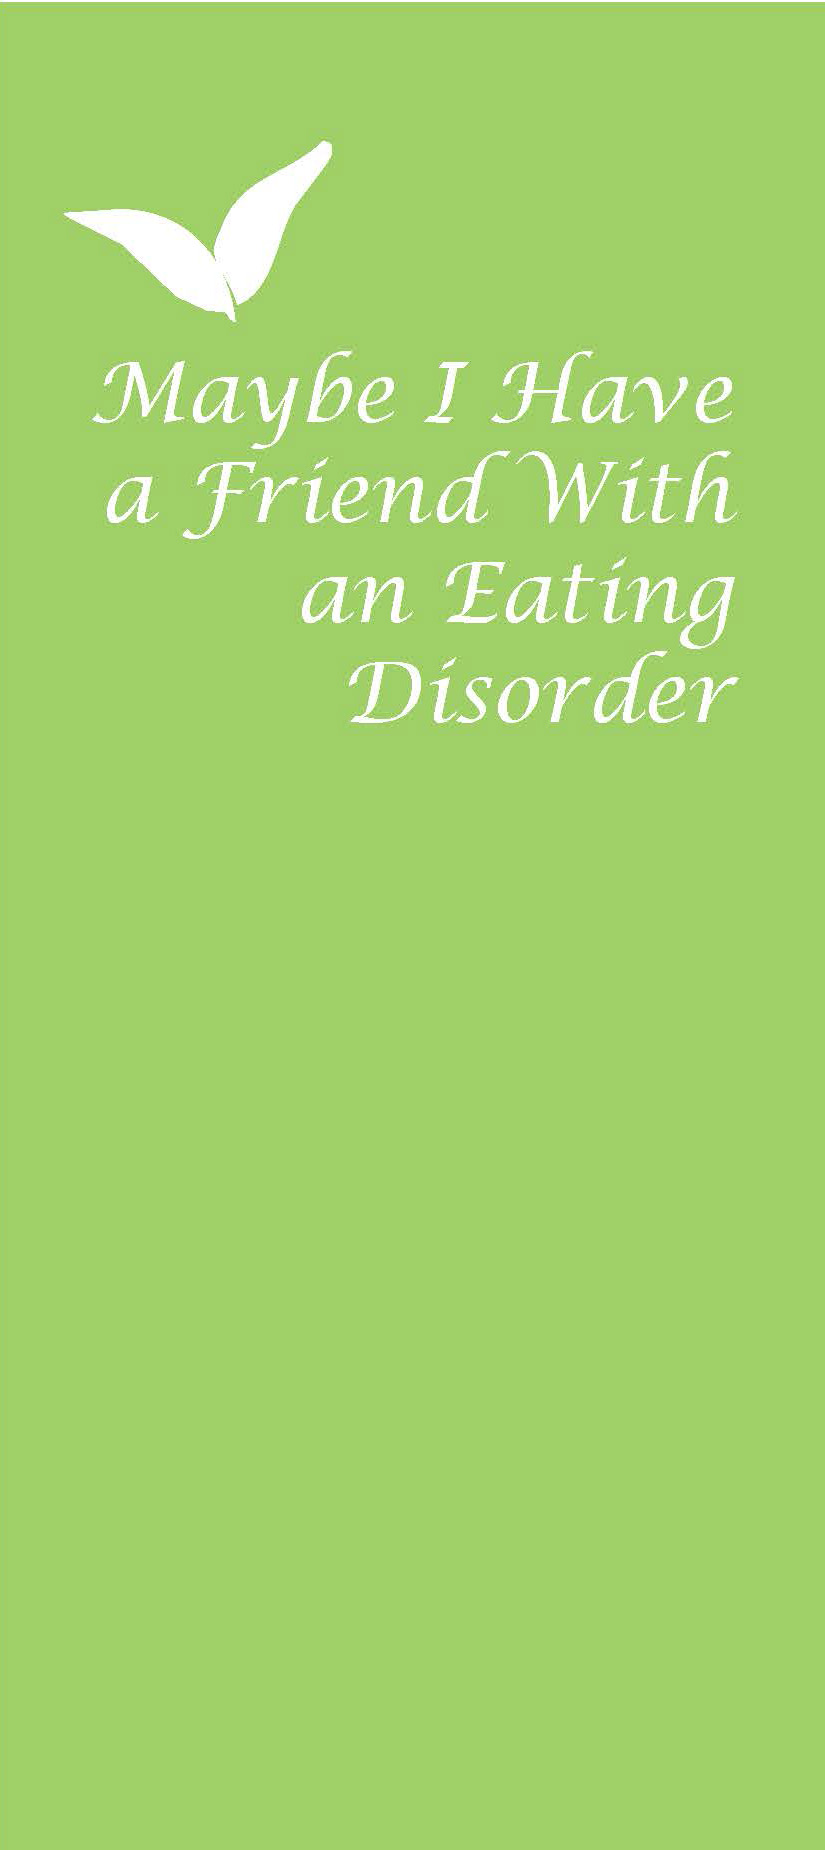 Workbooks eating disorder workbook : Maybe I Have a Friend With an Eating Disorder | Counseling Center